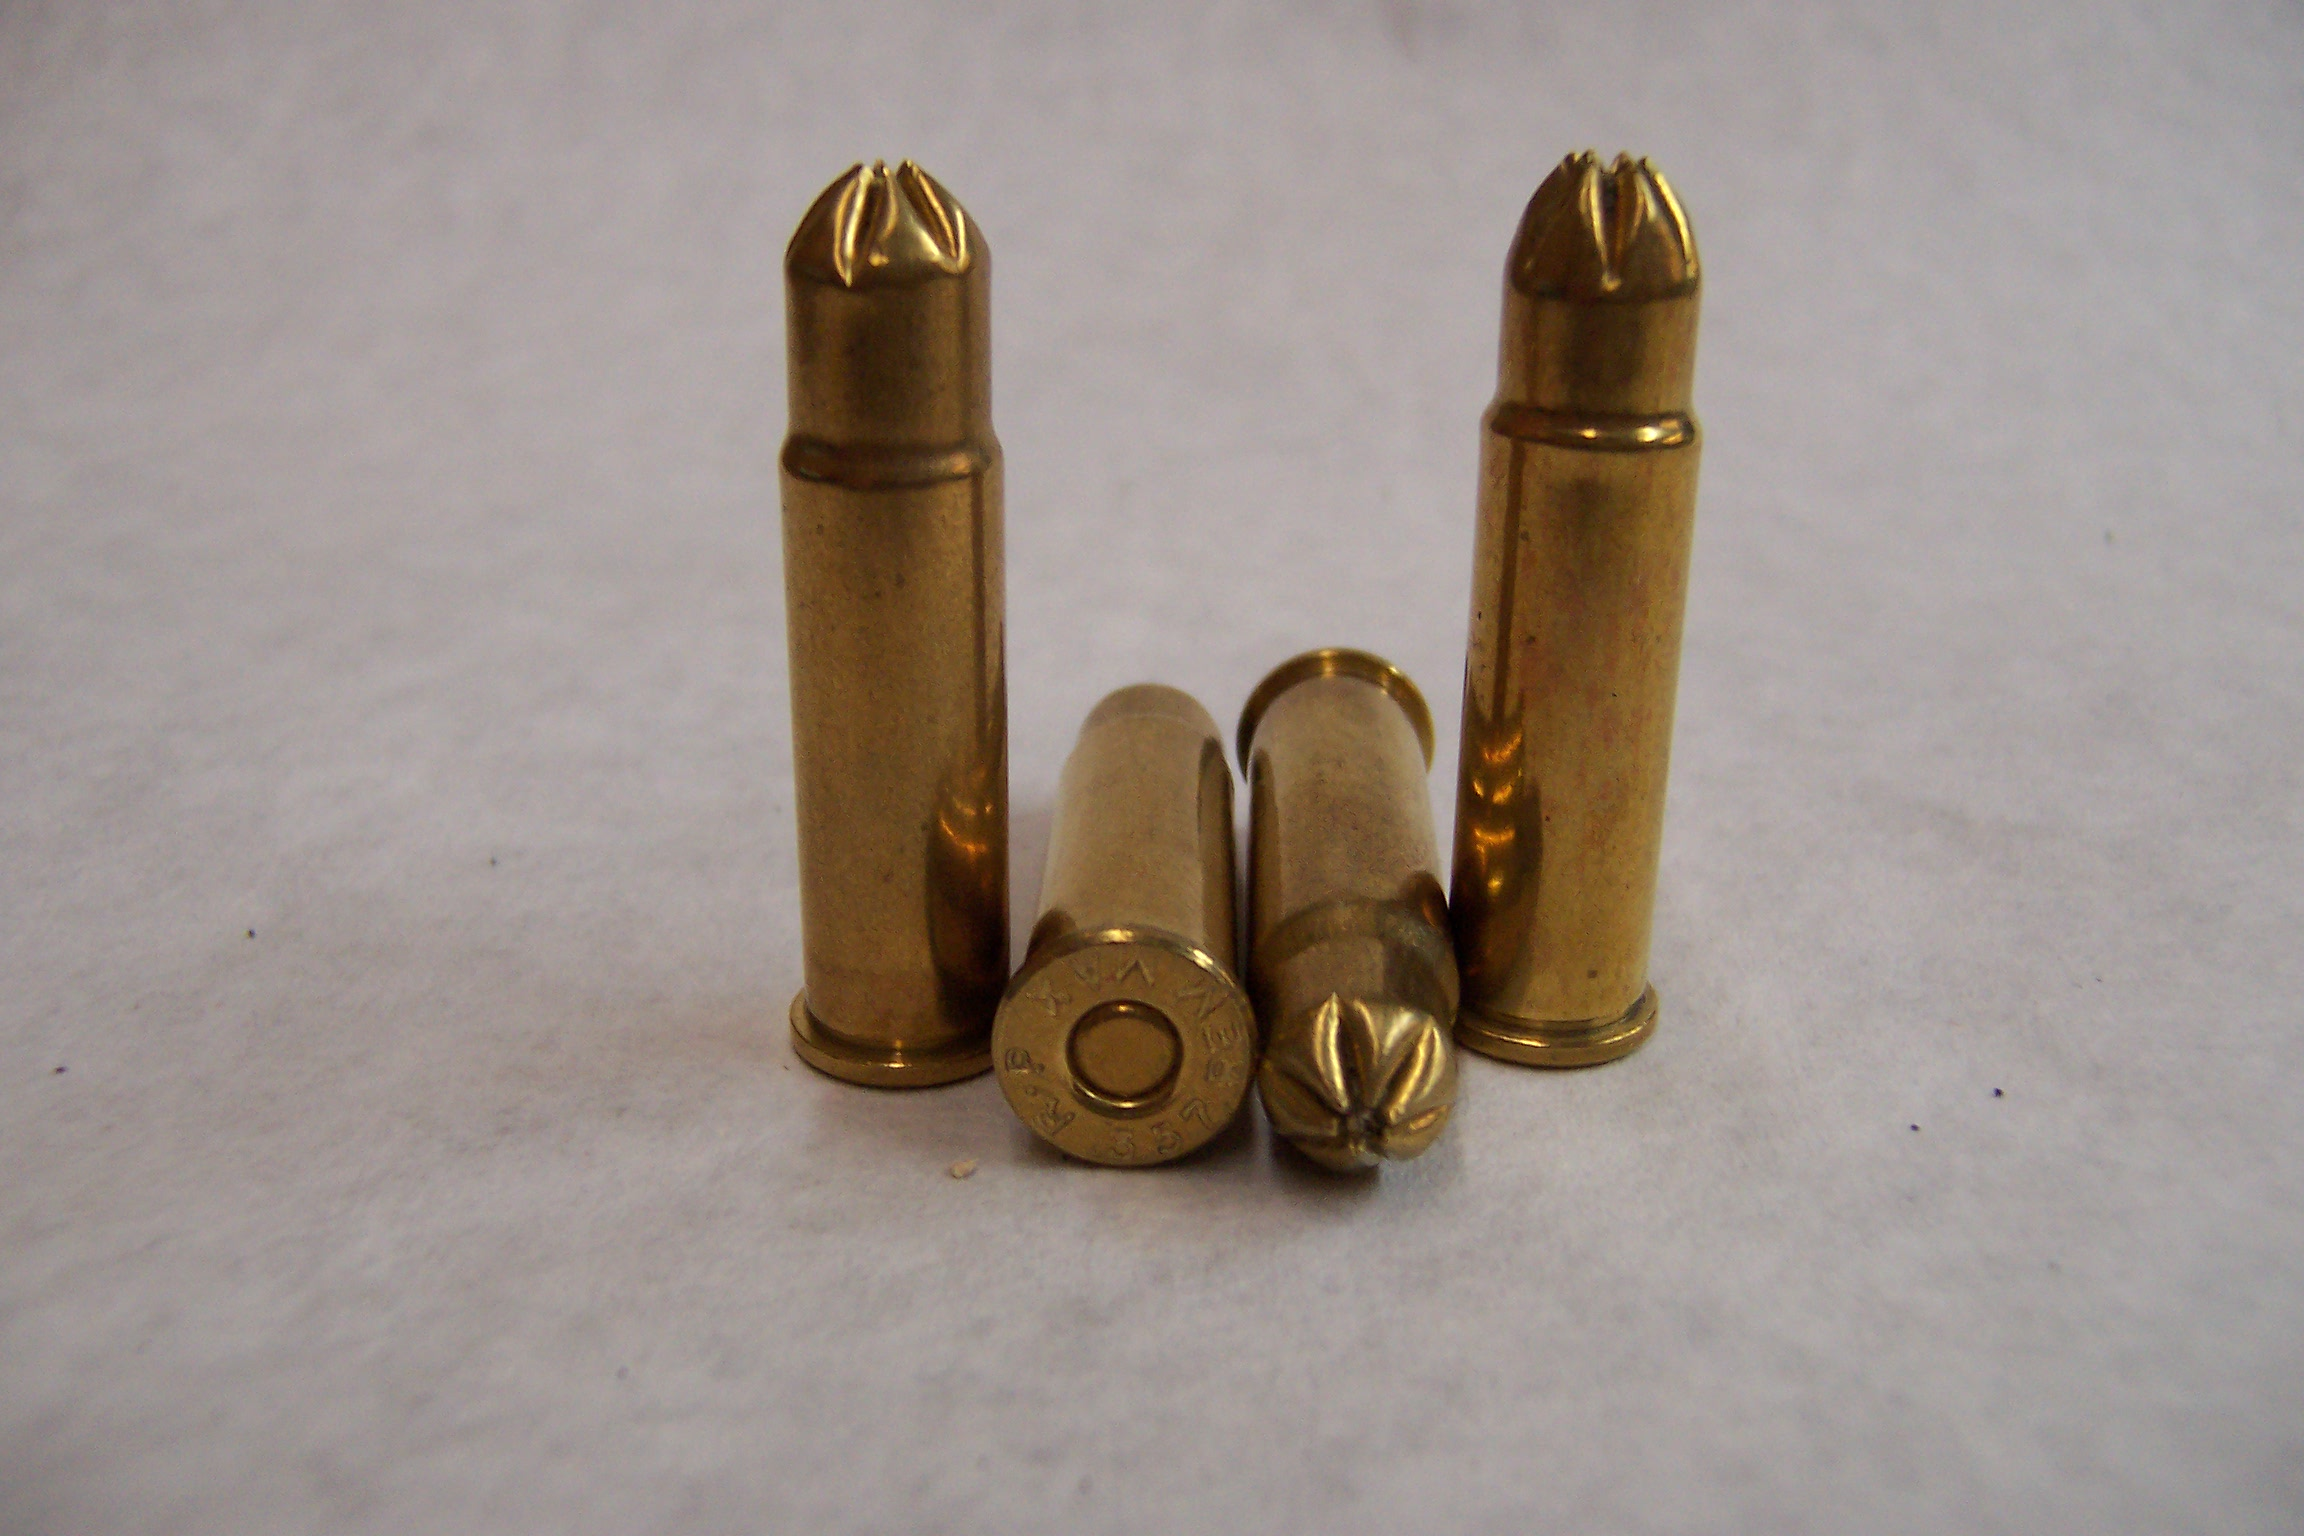 Full loaded 357 Mag Blanks